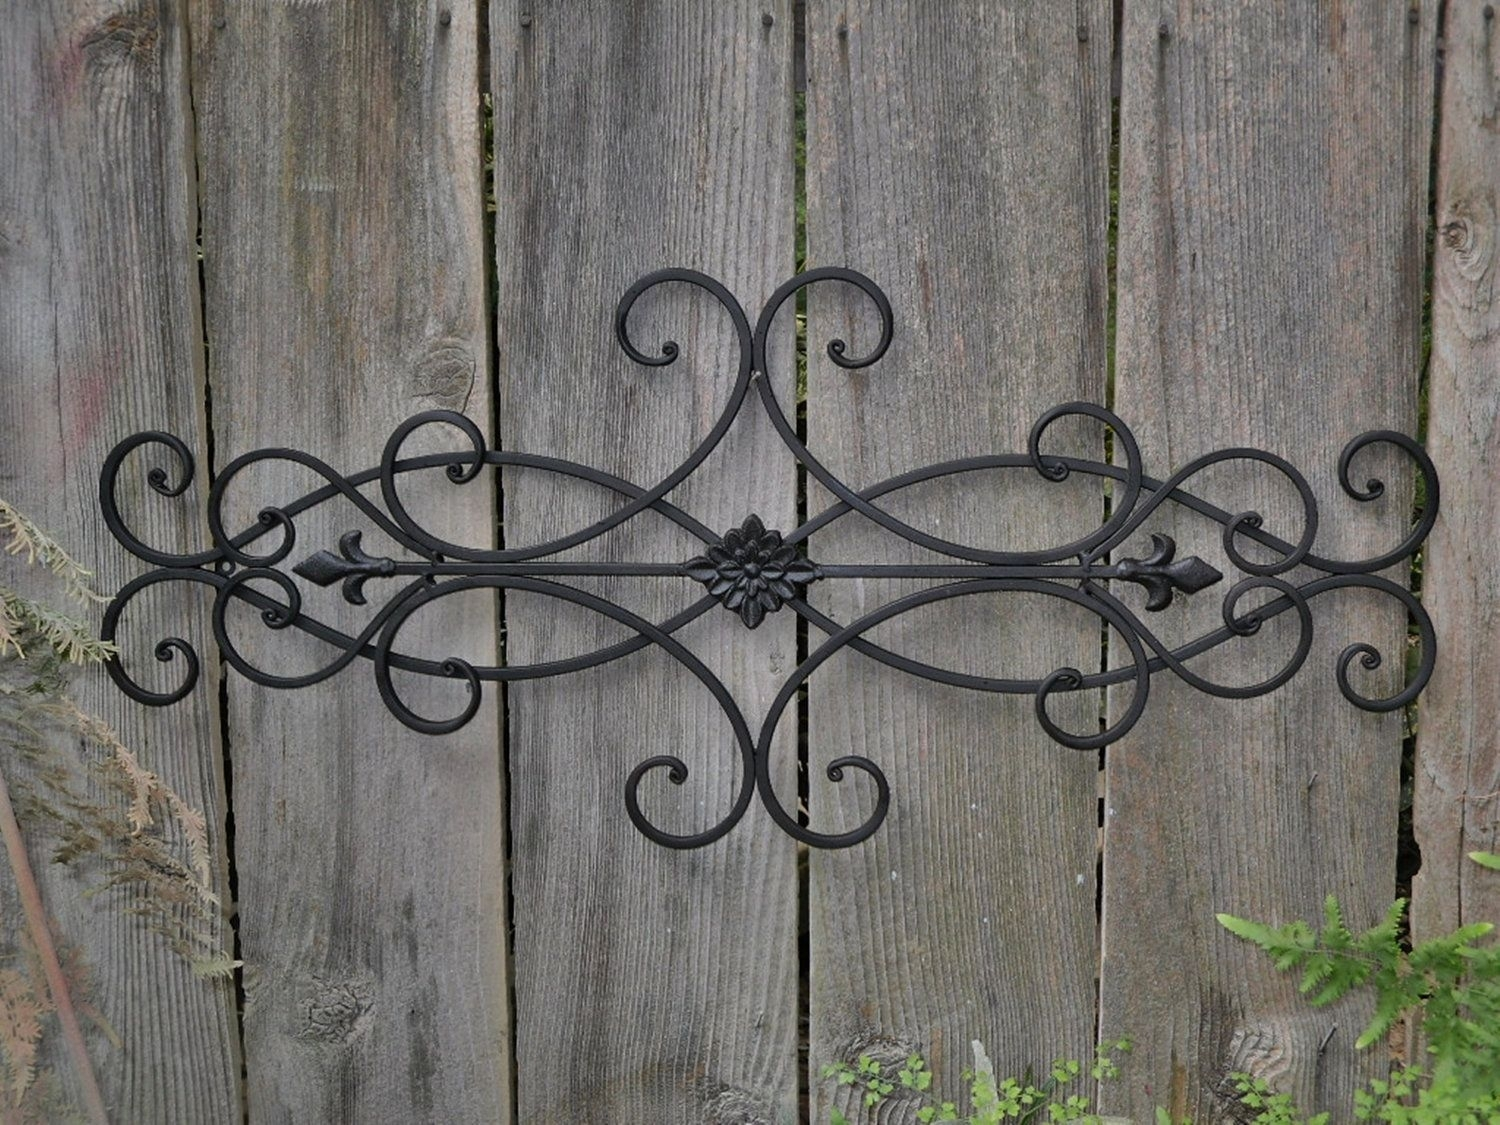 Exterior Wall Art | Wall Decor Indoor Outdoor Cottage Style Fleur De Intended For Latest Wrought Iron Wall Art (View 3 of 15)